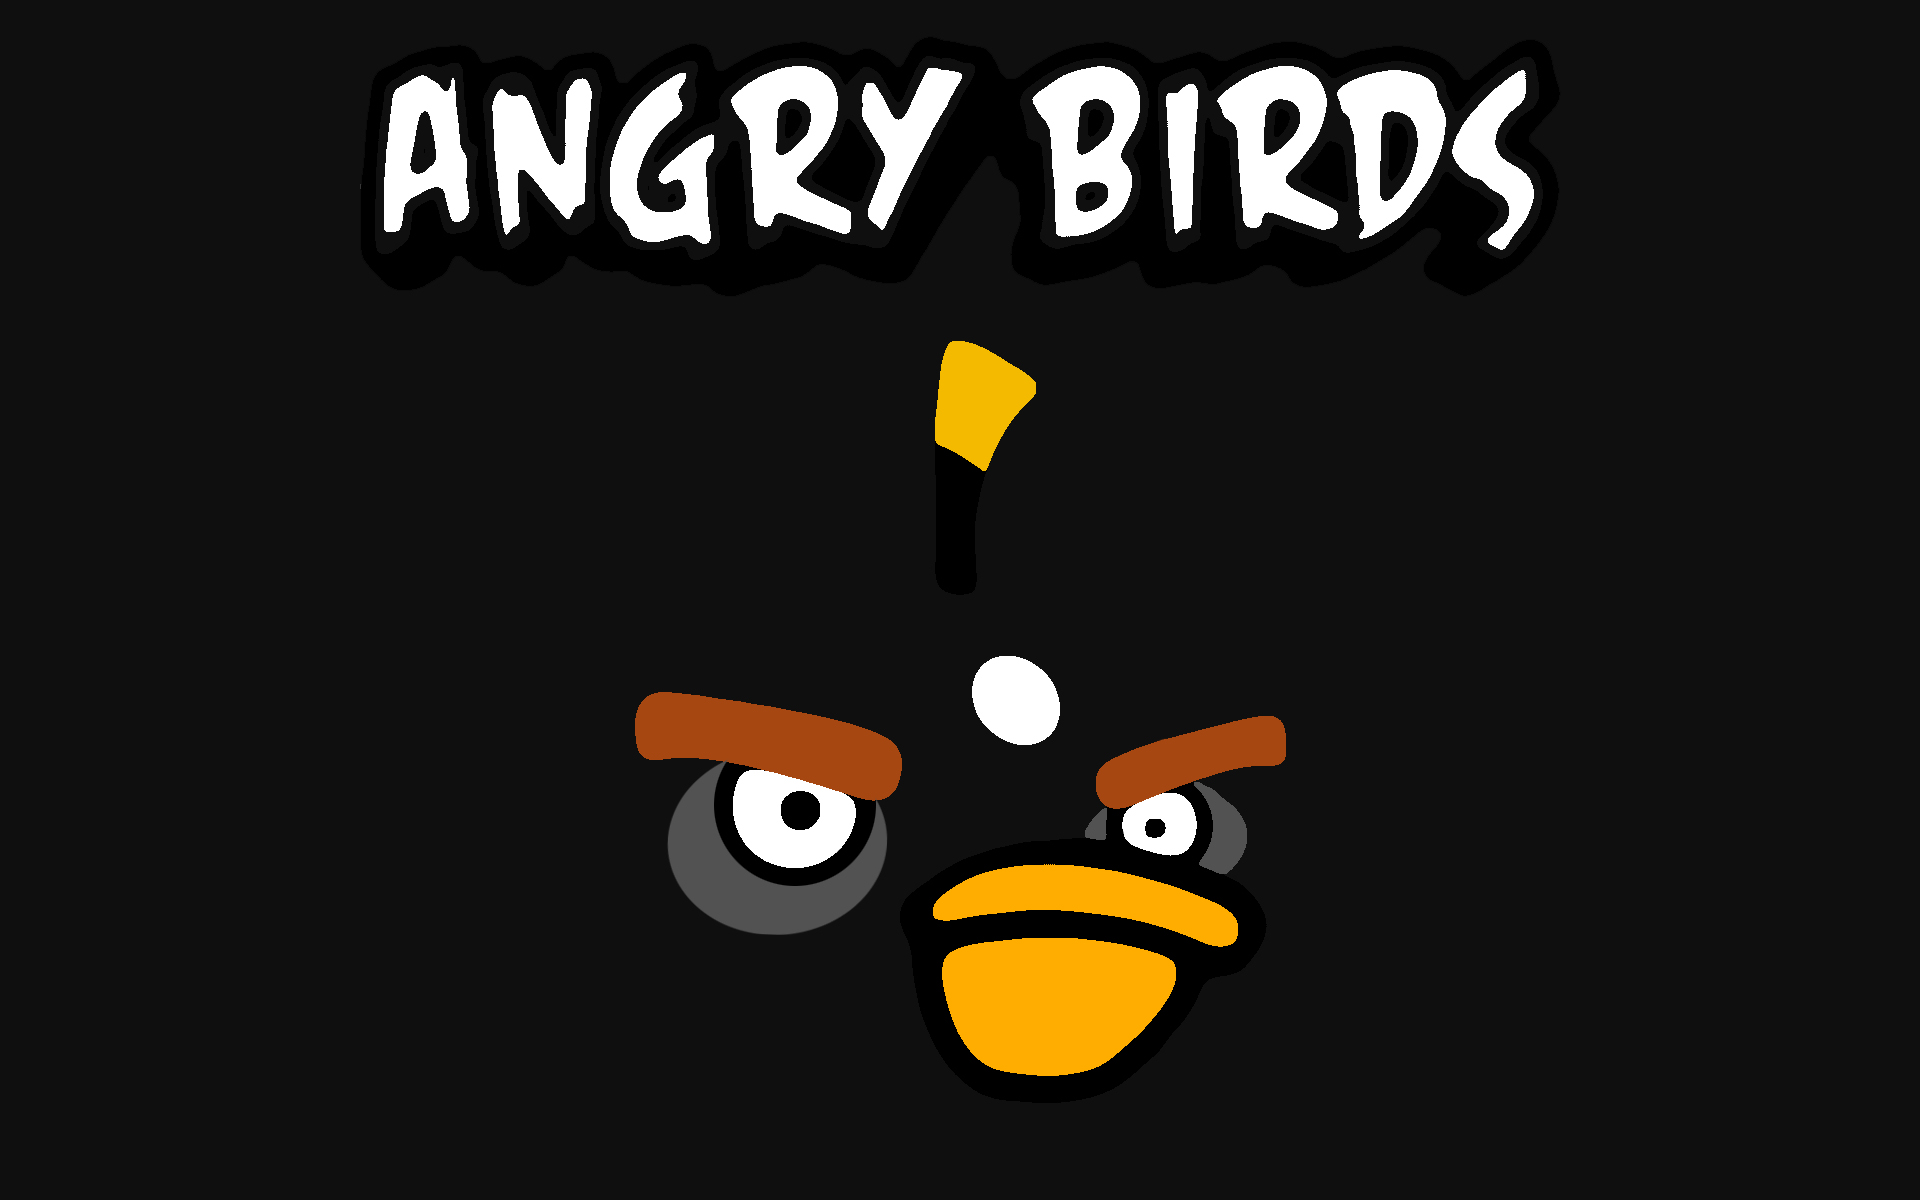 angry birds wallpaper 13217